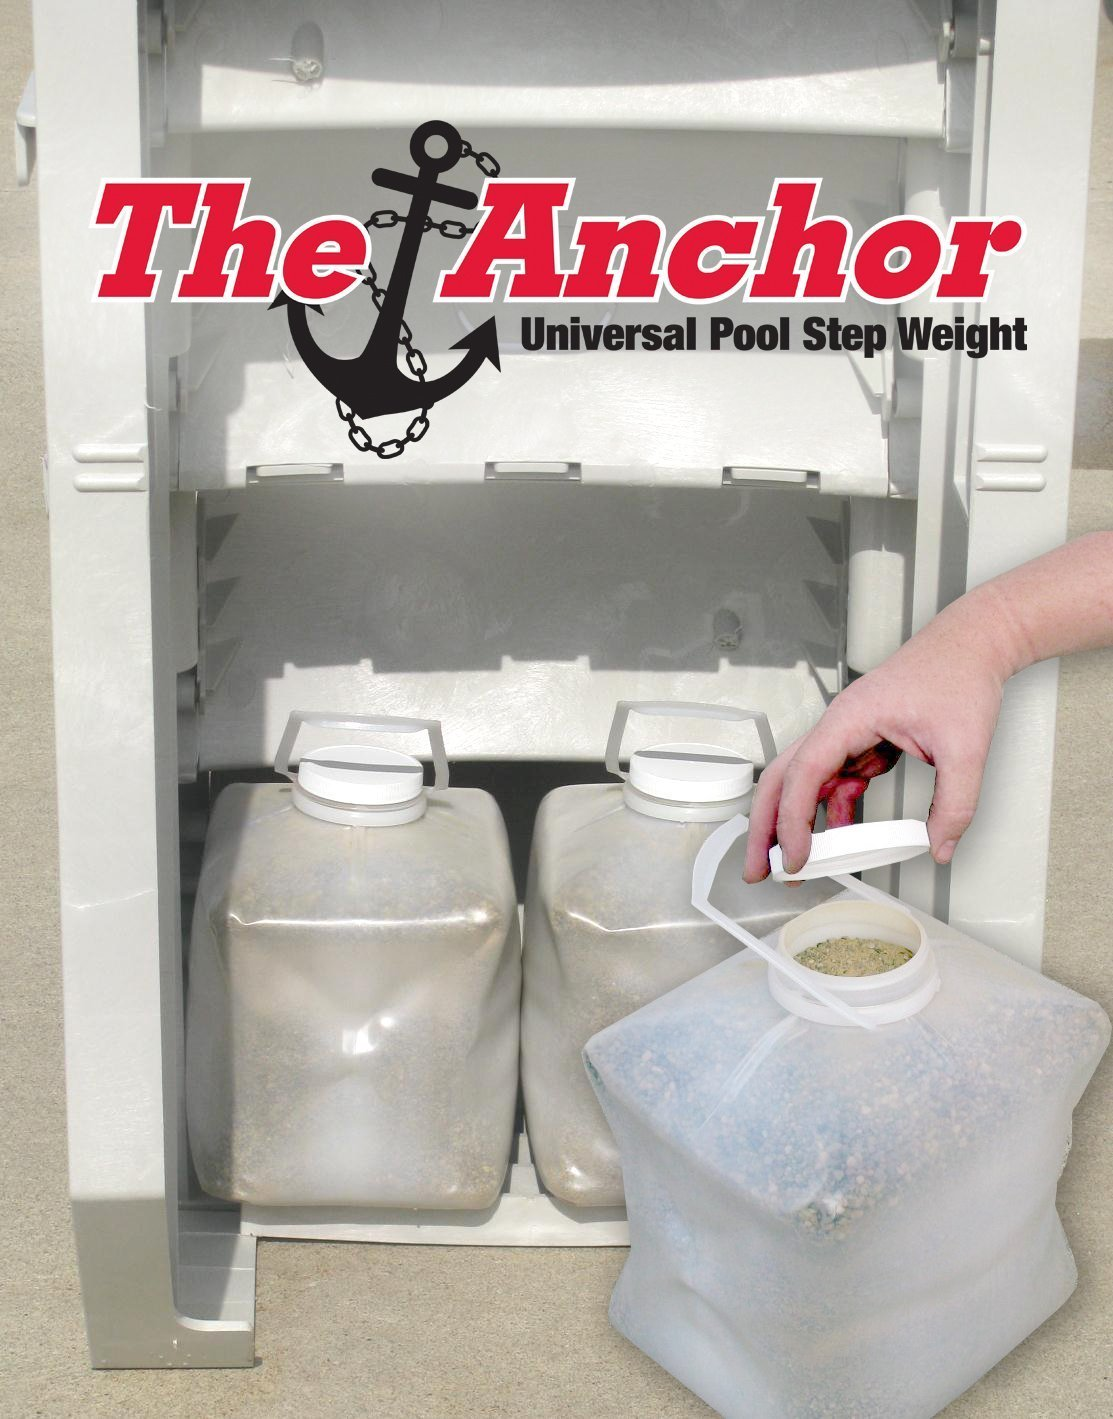 Main Access Anchor Universal Pool Step Weight